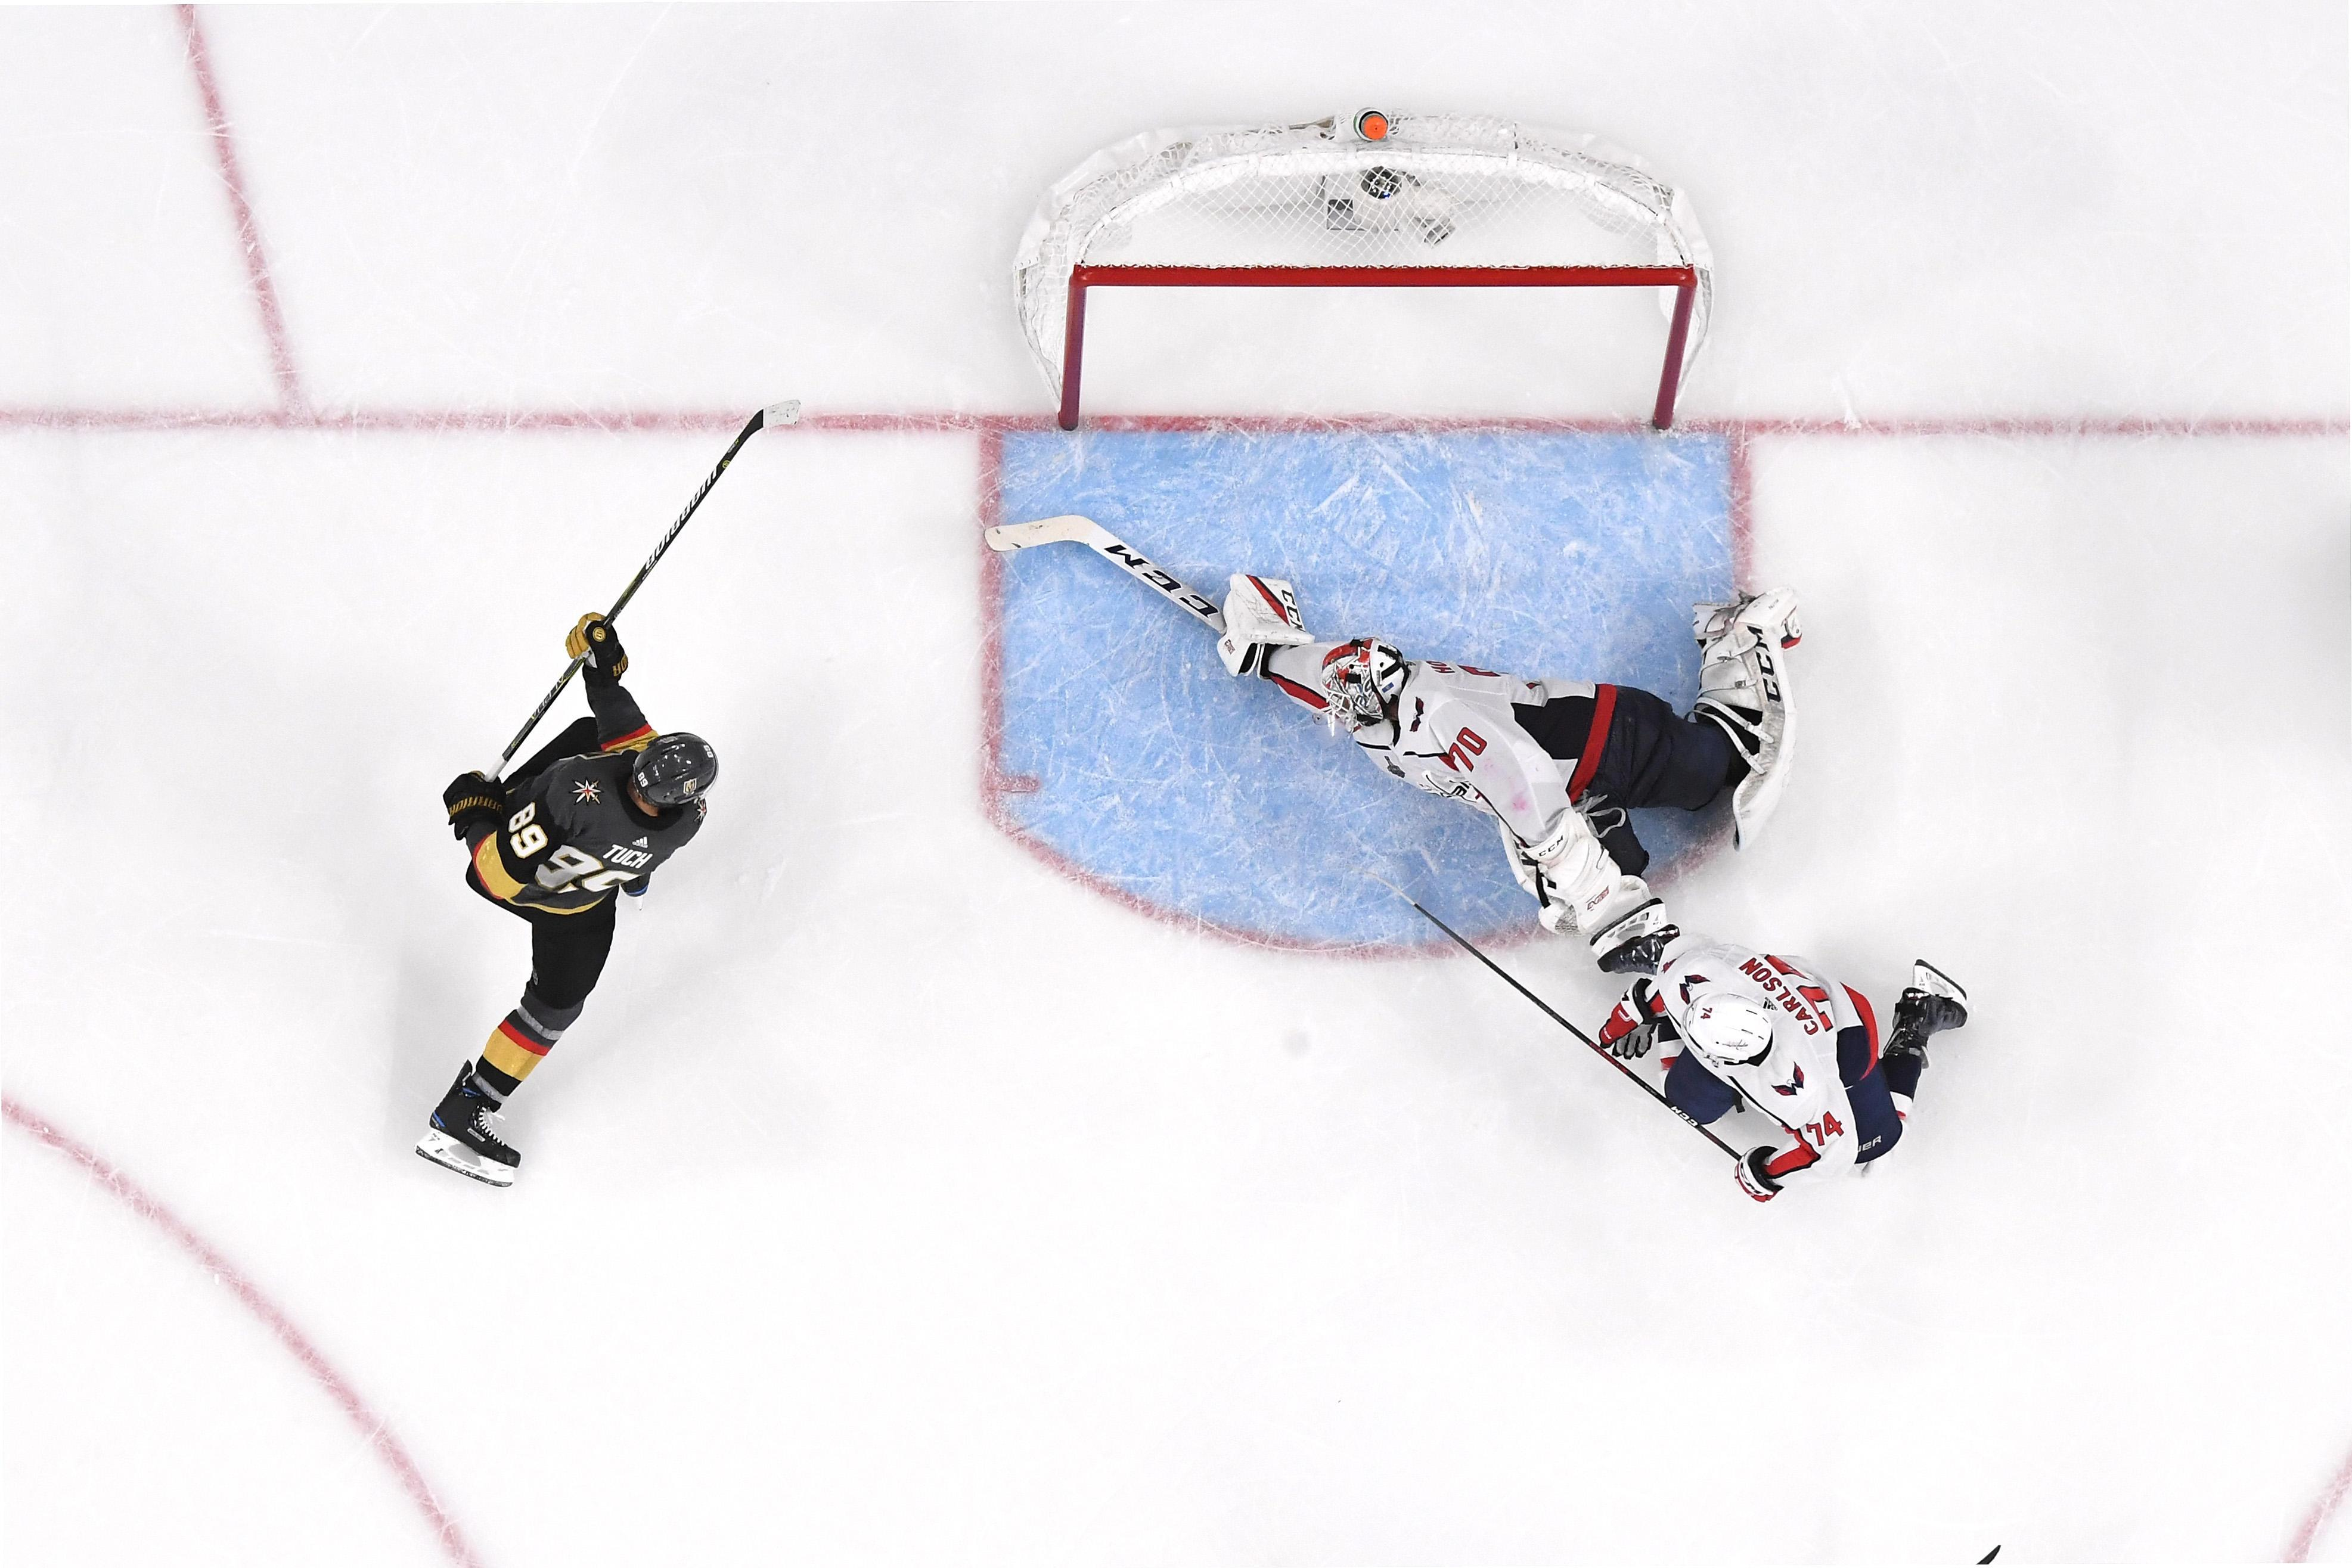 LAS VEGAS, NV - MAY 30:  Braden Holtby #70 of the Washington Capitals makes a diving stick save on Alex Tuch #89 of the Vegas Golden Knights during the third period in Game Two of the 2018 NHL Stanley Cup Final at T-Mobile Arena on May 30, 2018 in Las Vegas, Nevada. The Capitals defeated the Golden Knights 3-2.  (Photo by Ethan Miller/Getty Images)